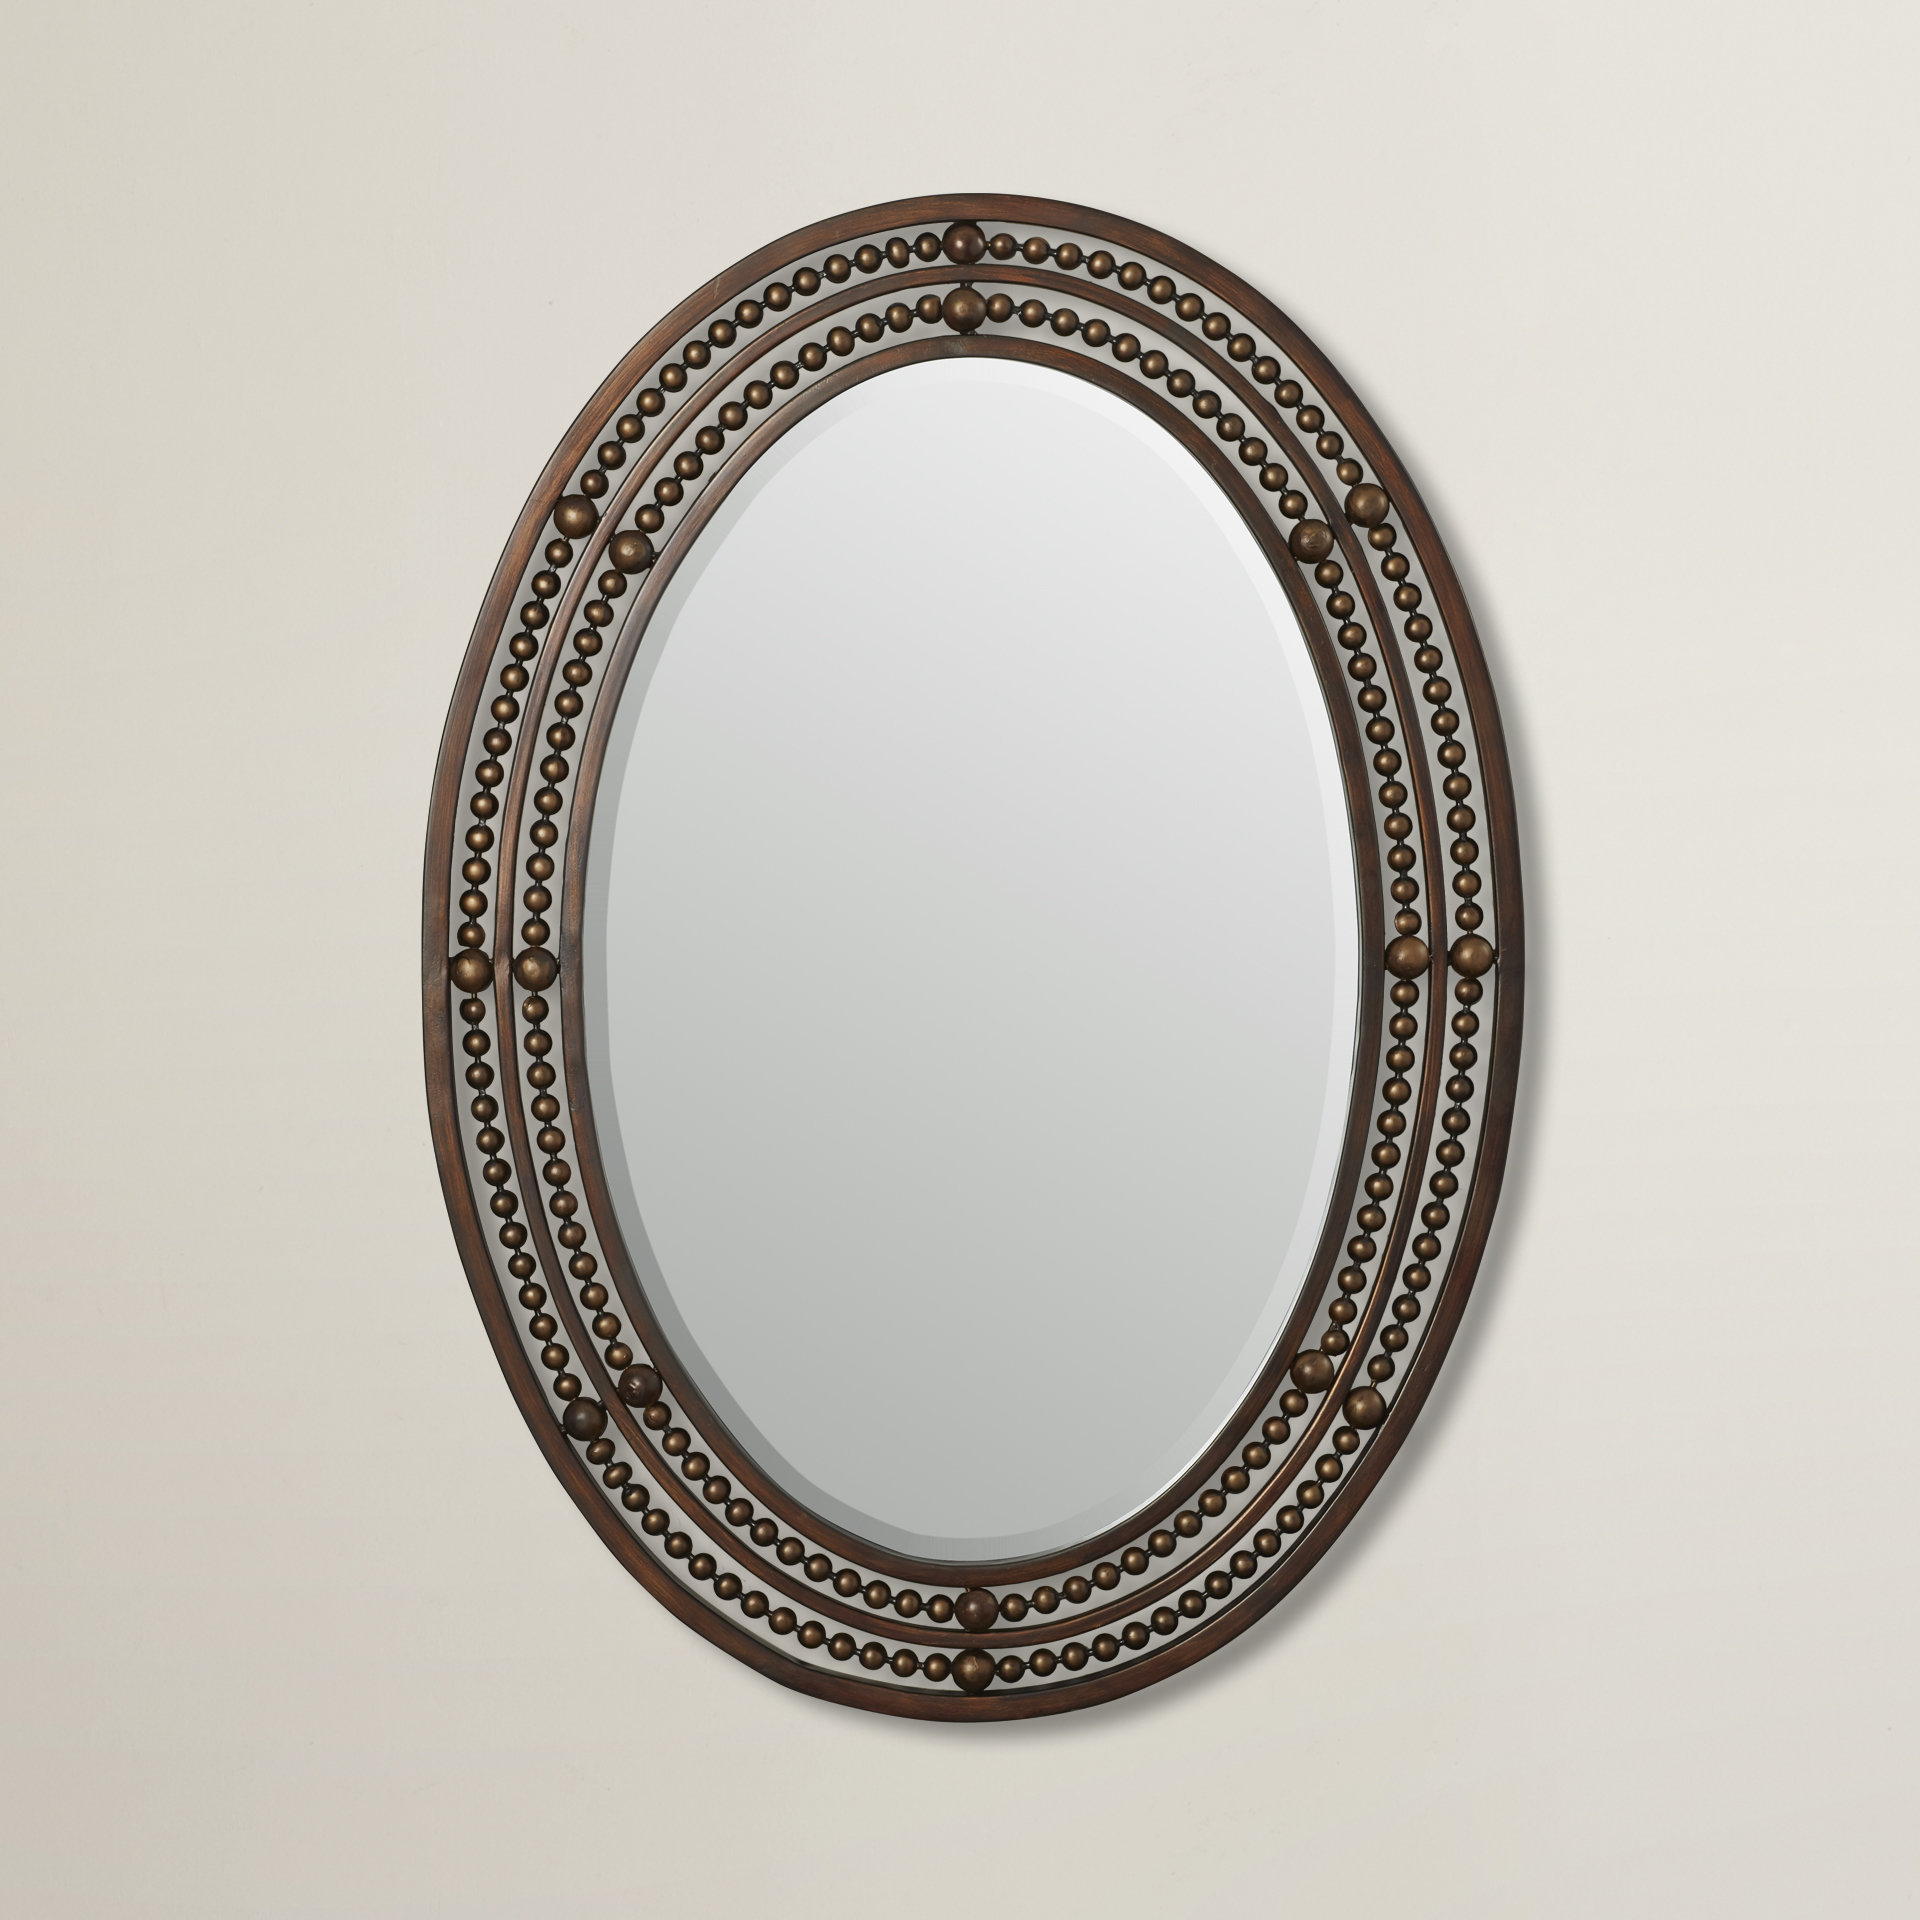 Leeper Oval Wall Mirror Pertaining To Pfister Oval Wood Wall Mirrors (Image 10 of 20)